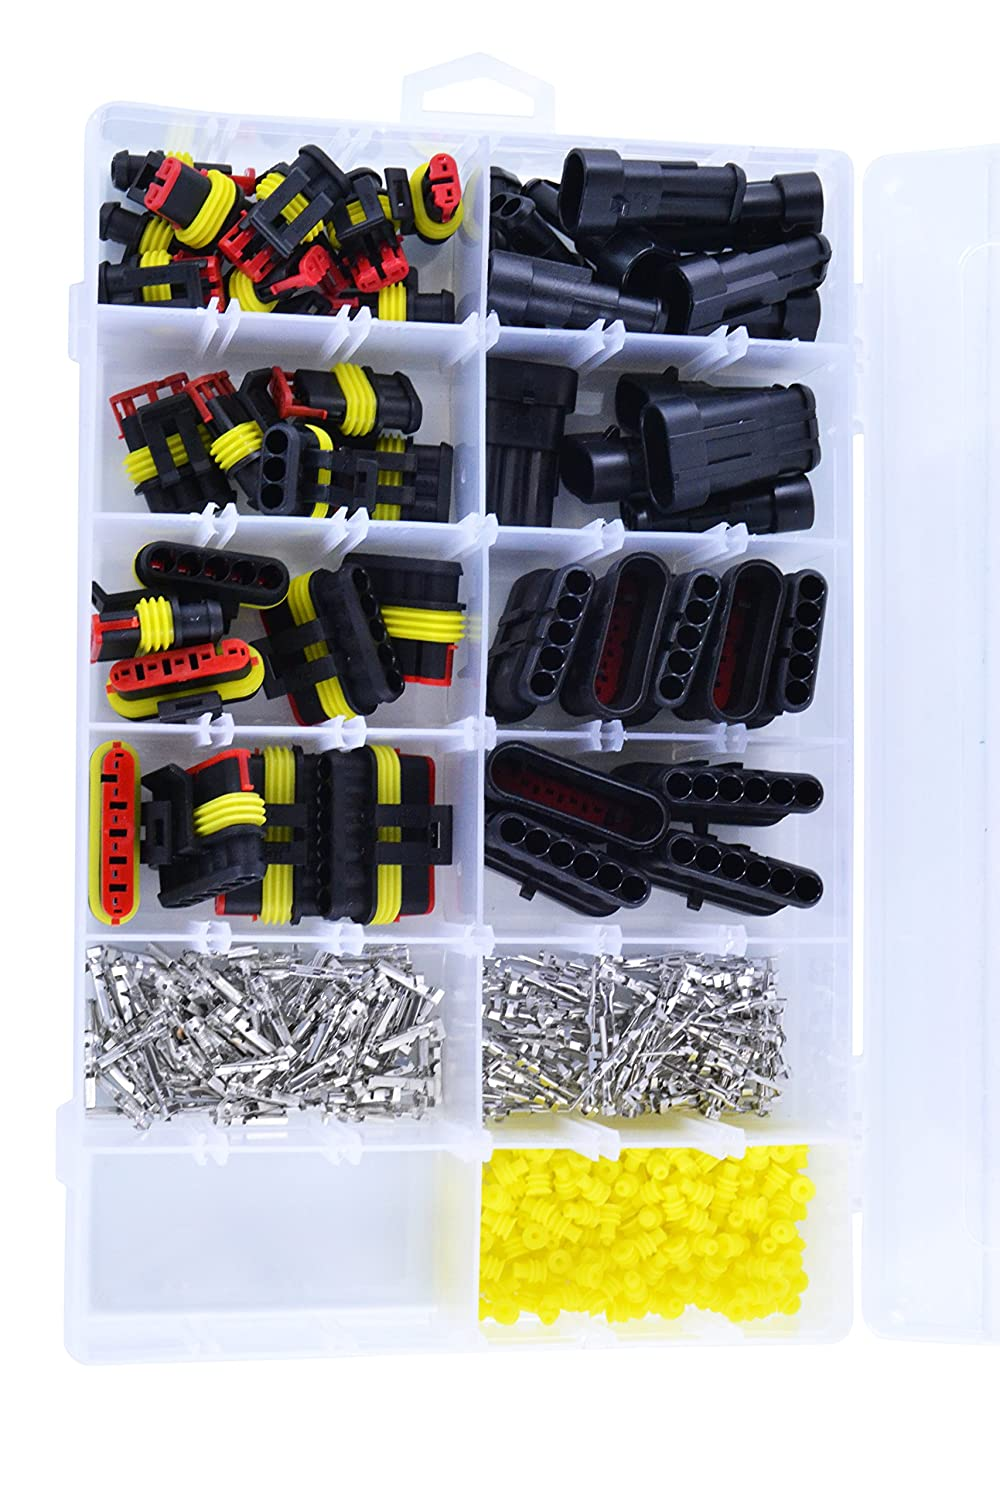 AMP Universal Connector Kit 384 pcs For ATV Inboard Motocycle PWC Outboard Scooter Snowmobile Tractor UTV RMSTATOR